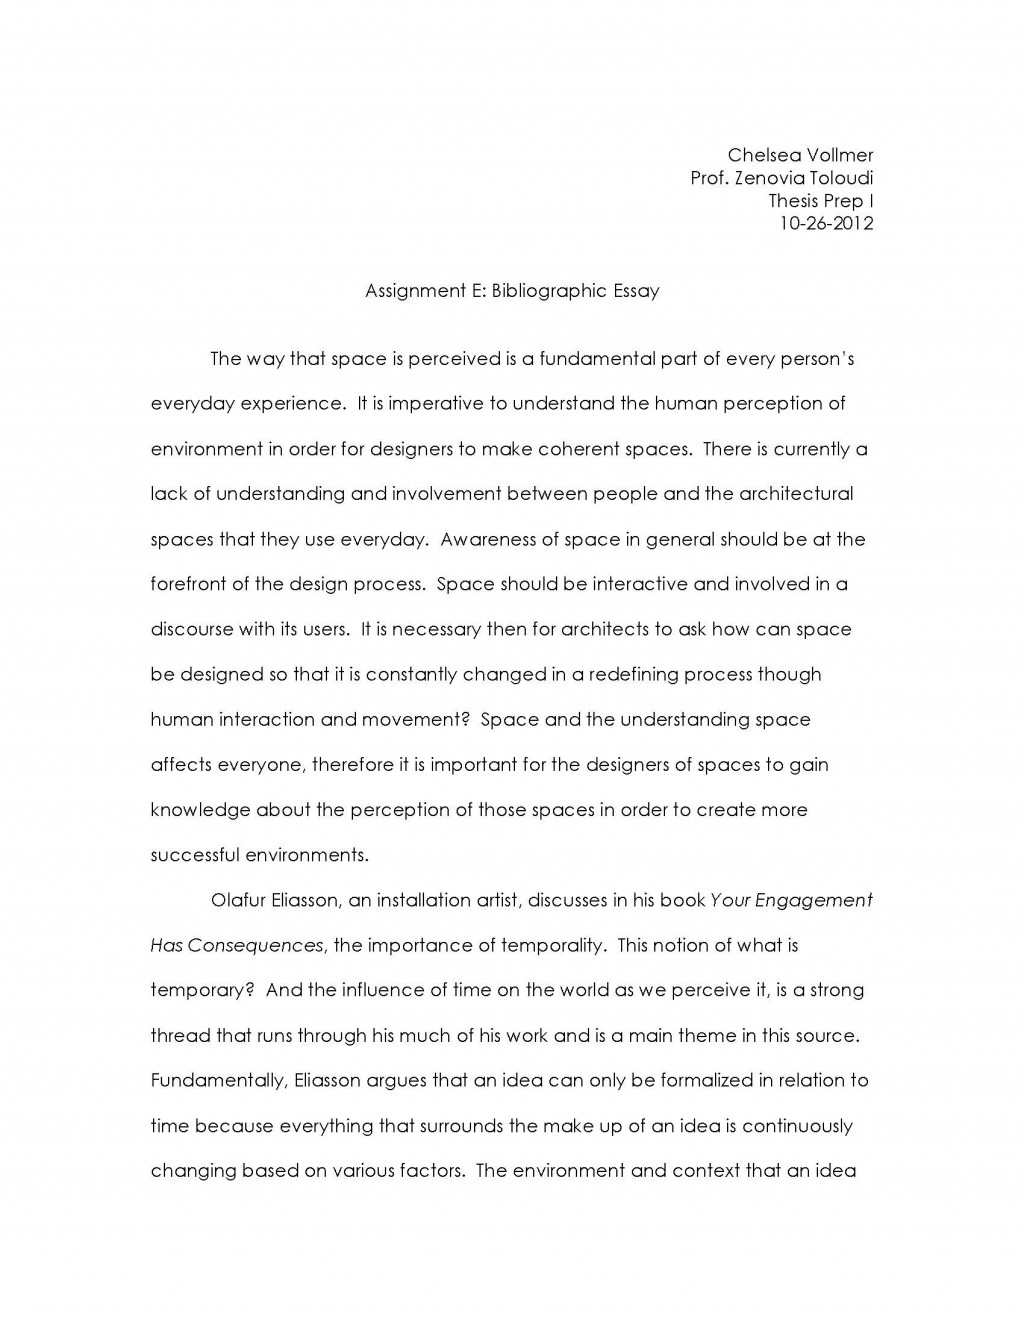 007 Assignment E Page 12 Satirical Essays Essay Exceptional Satire Examples On Social Media Issues Large